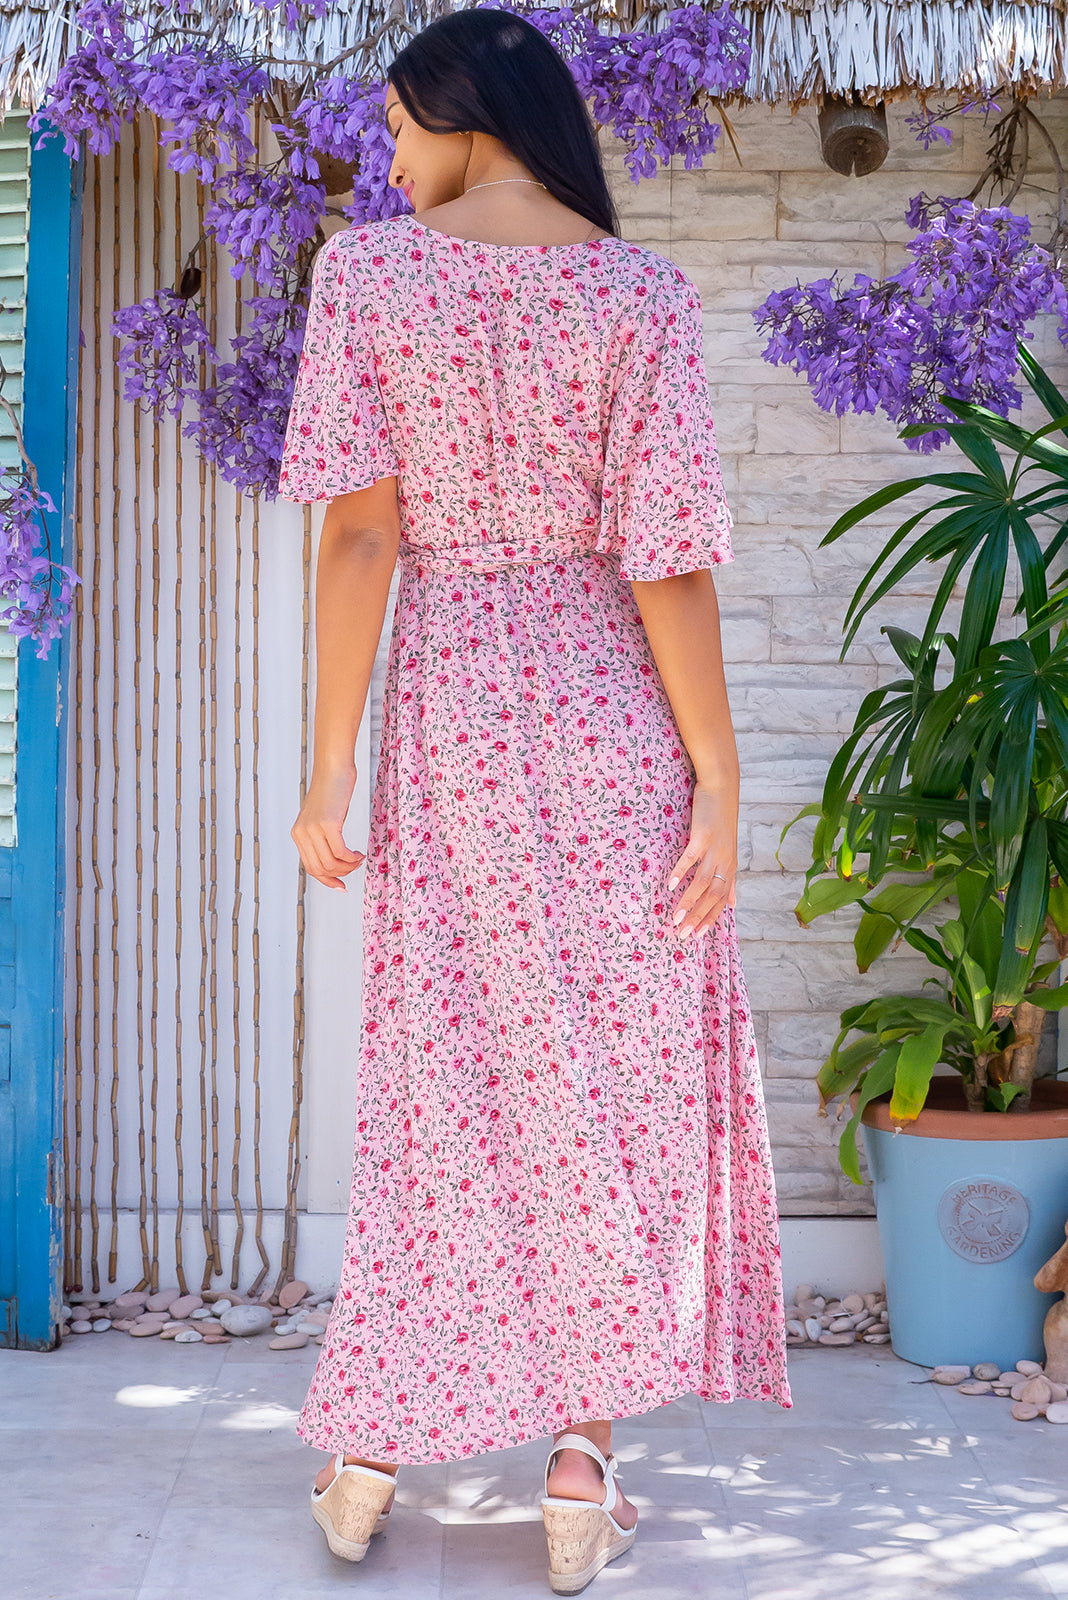 The Cinnamon Pink Blush Maxi Wrap Dress features adjustable wrap tie waist, scooped hem, shorter at the front and crinkle textured rayon in soft pink base with small floral print.